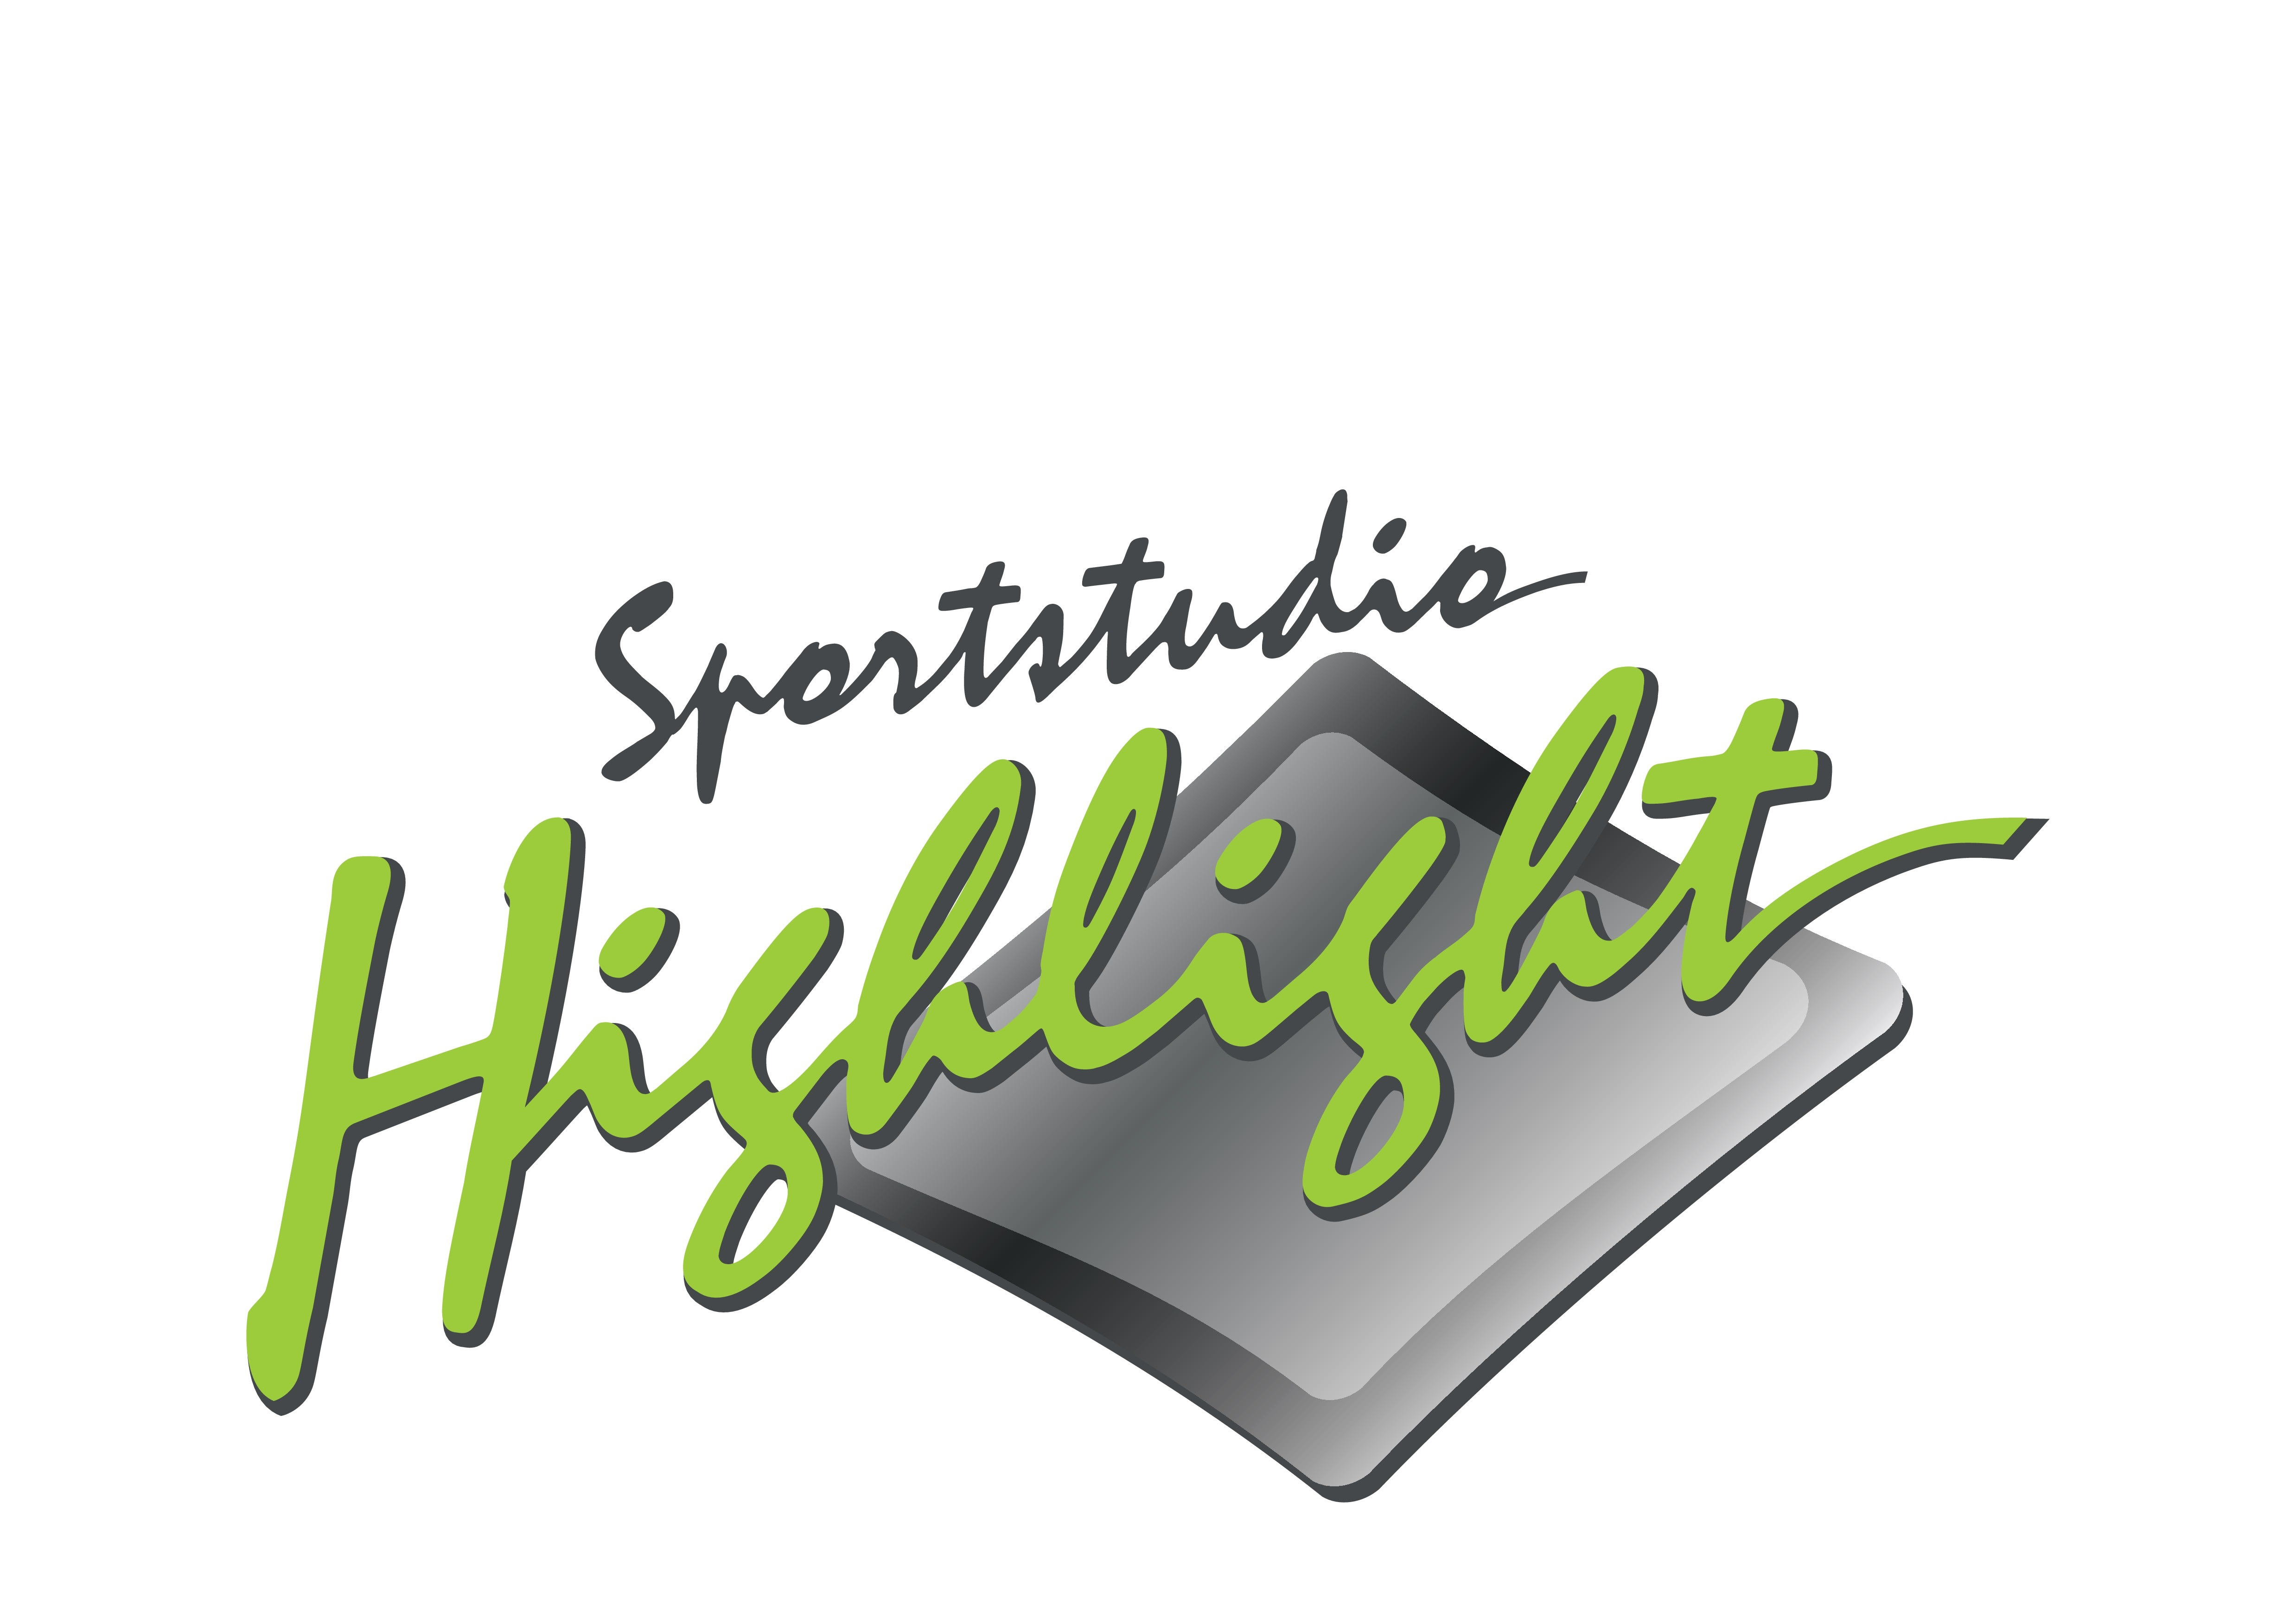 Sportstudio Highlight